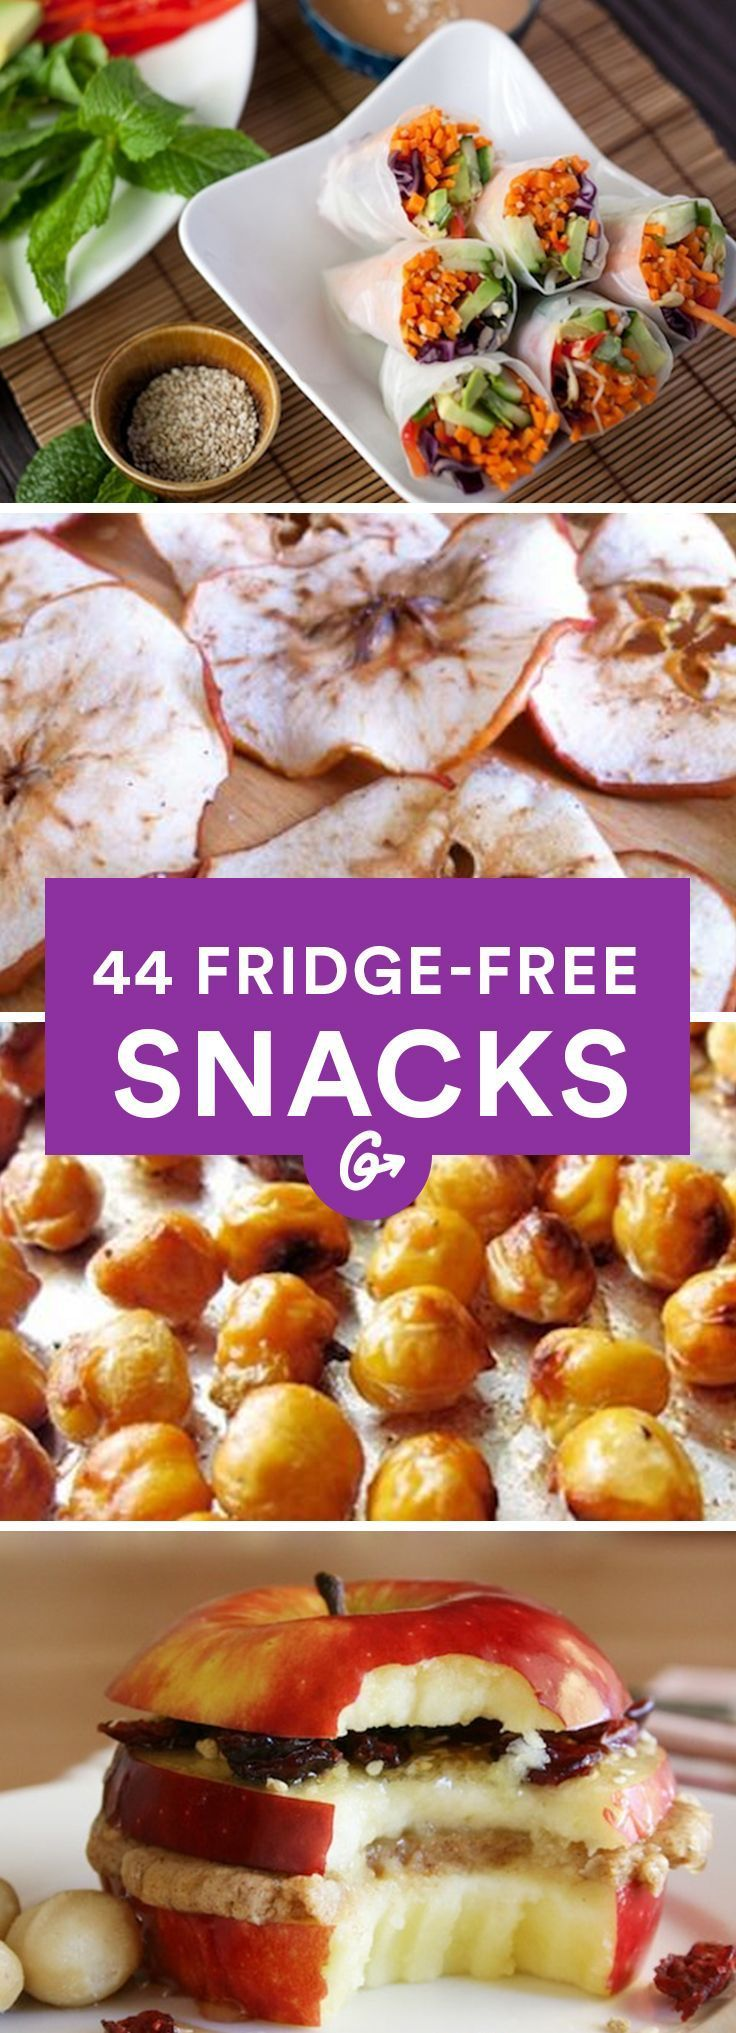 Healthy and Portable Snacks #healthy #snacks http://greatist.com/health/healthy-portable-fridge-free-snacks